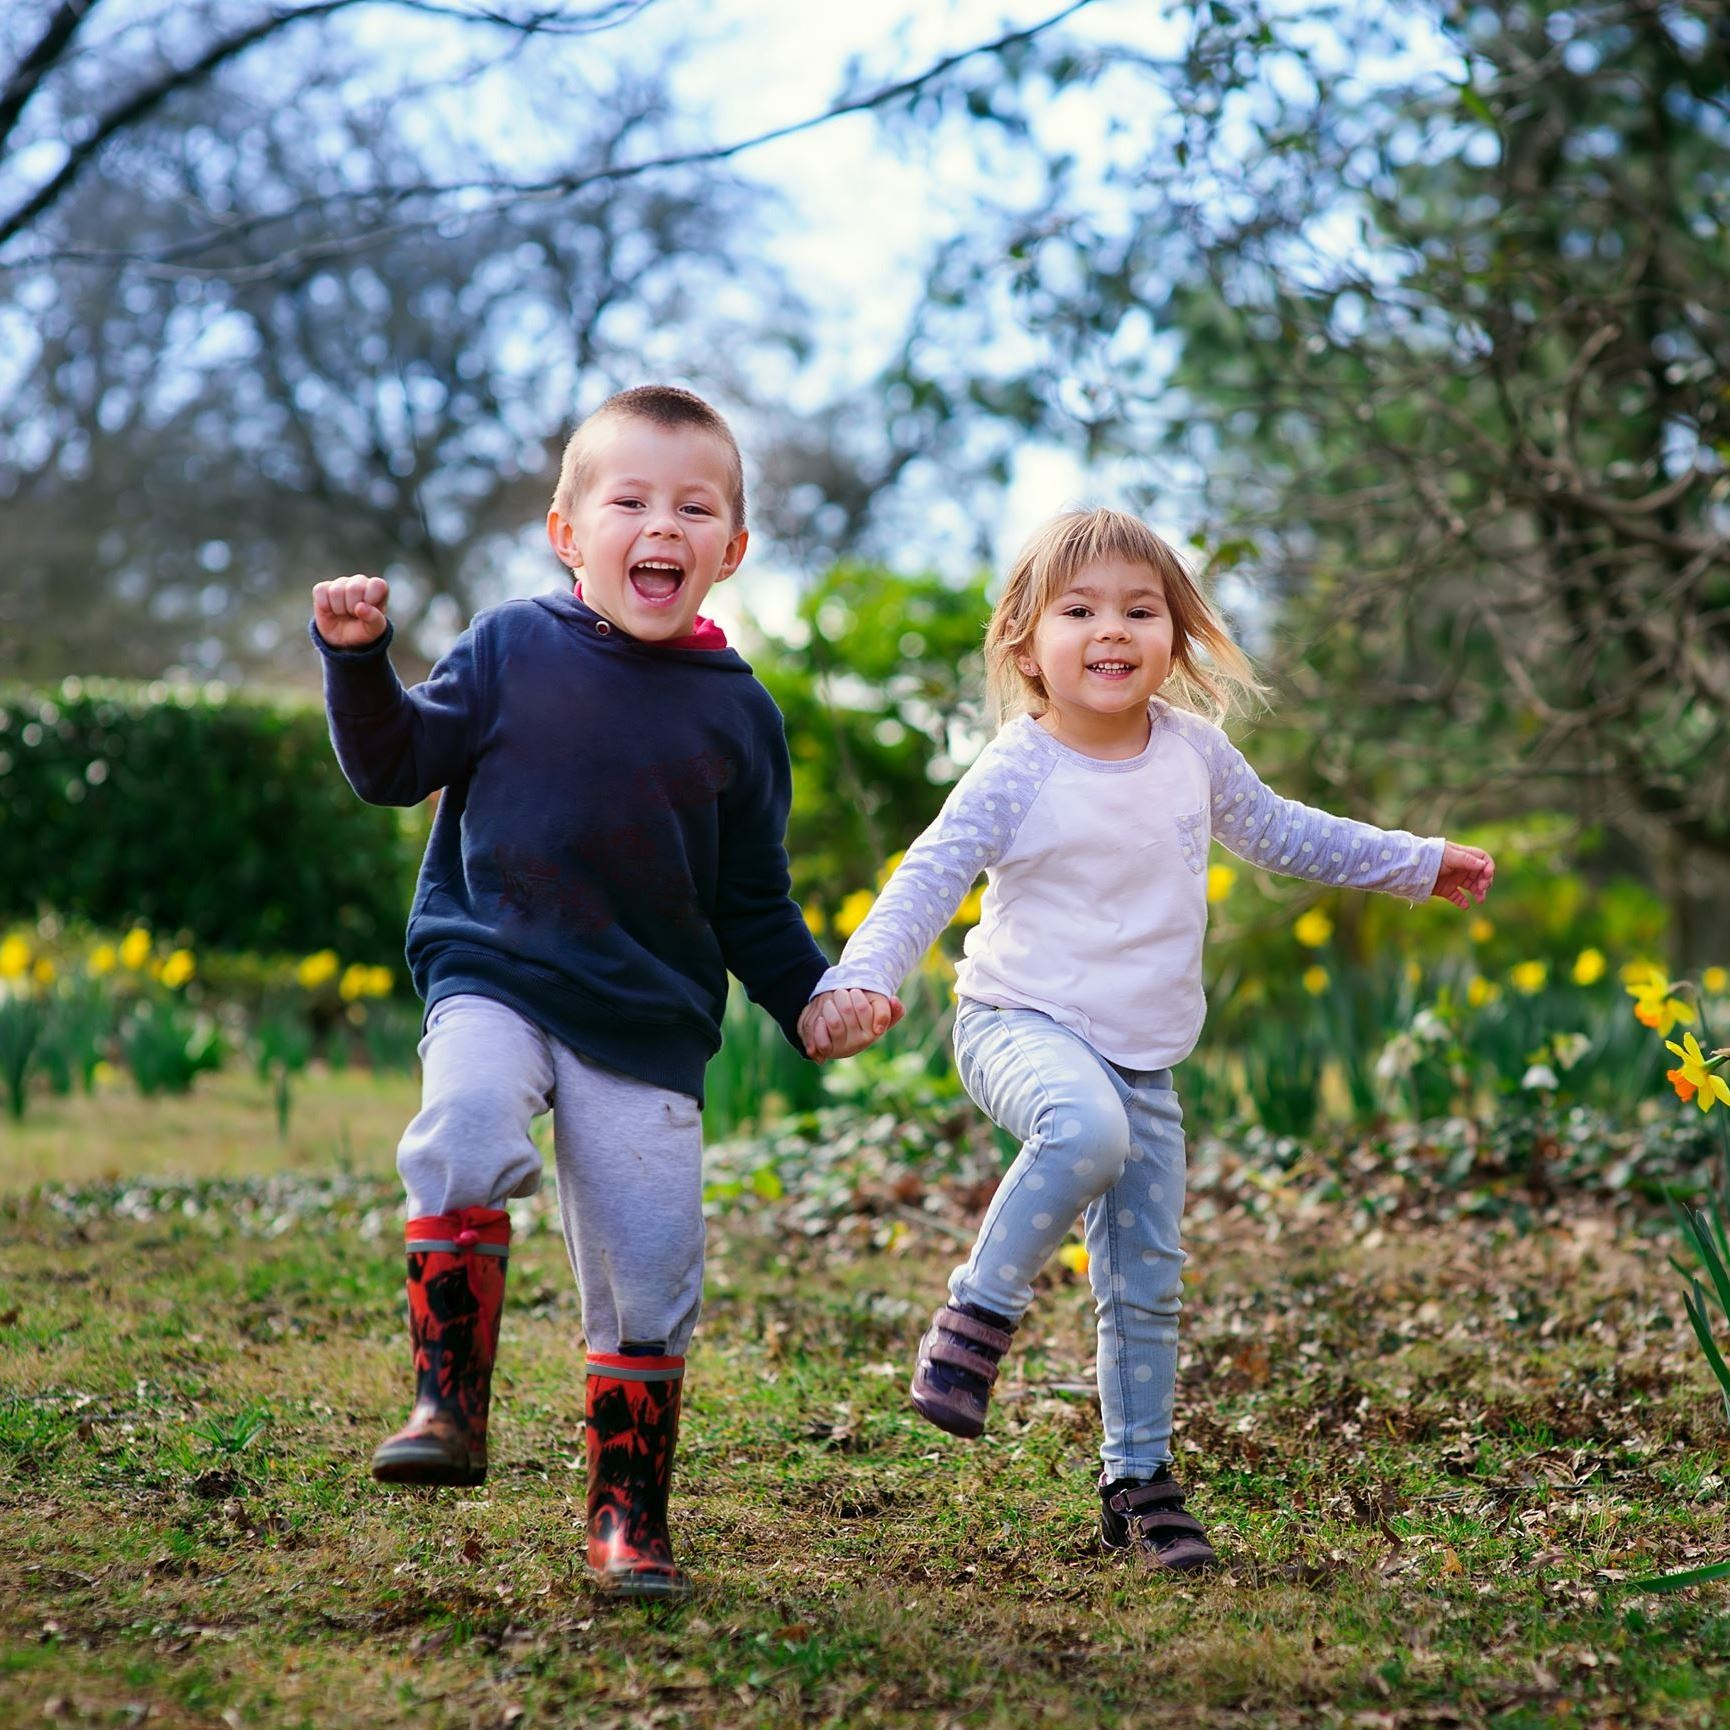 Happy children running through grass.